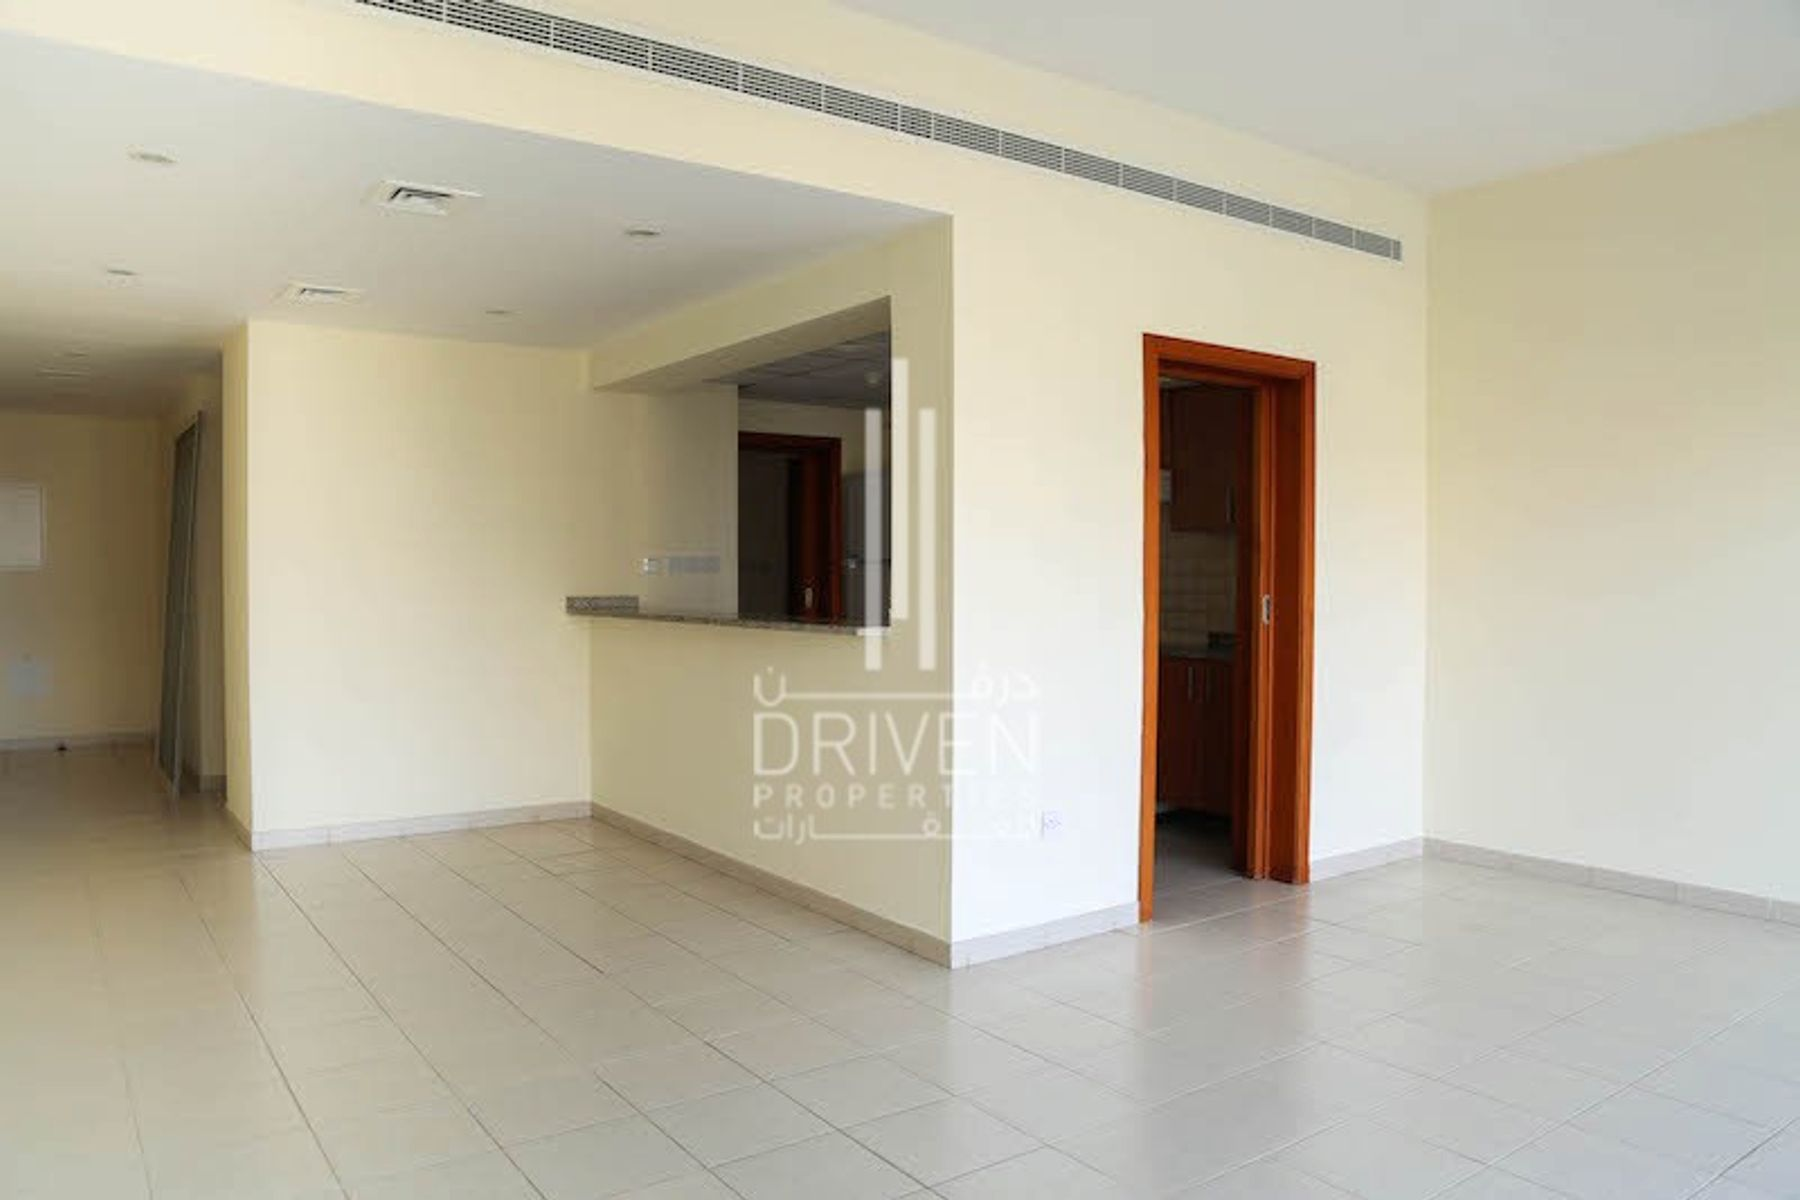 Apartment for Sale in Al Dhafra 4 - Greens